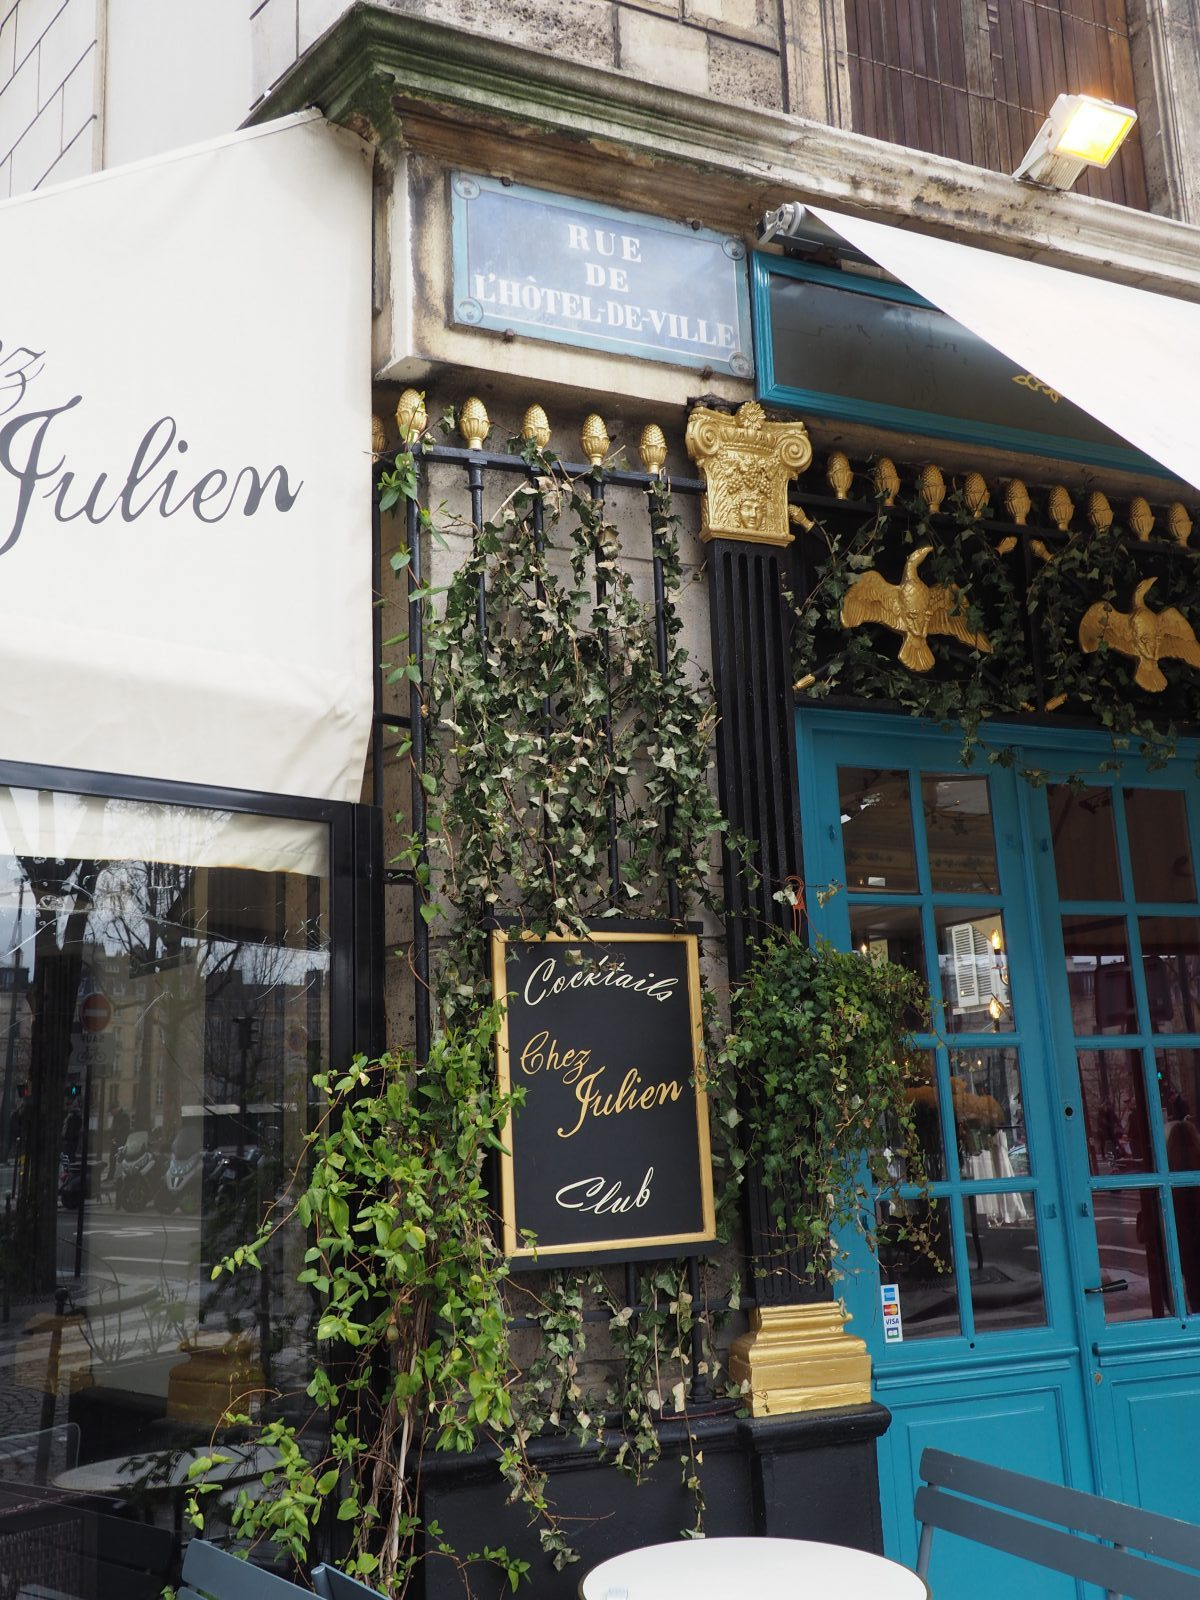 Chez_julien_marais_paris